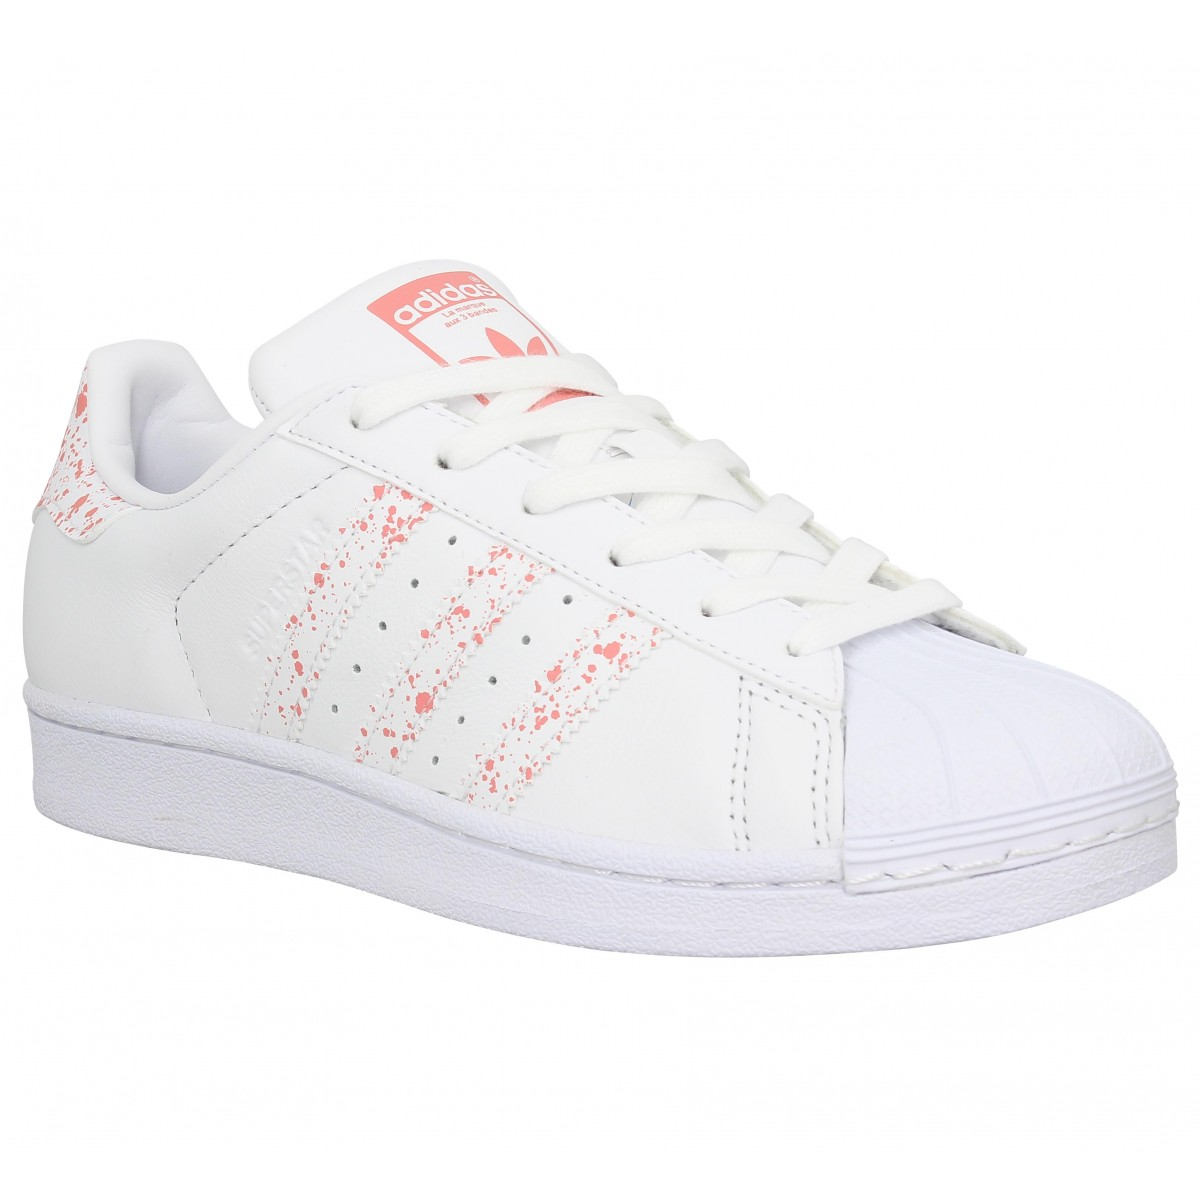 adidas superstar cuir femme blanc rose femme fanny chaussures. Black Bedroom Furniture Sets. Home Design Ideas